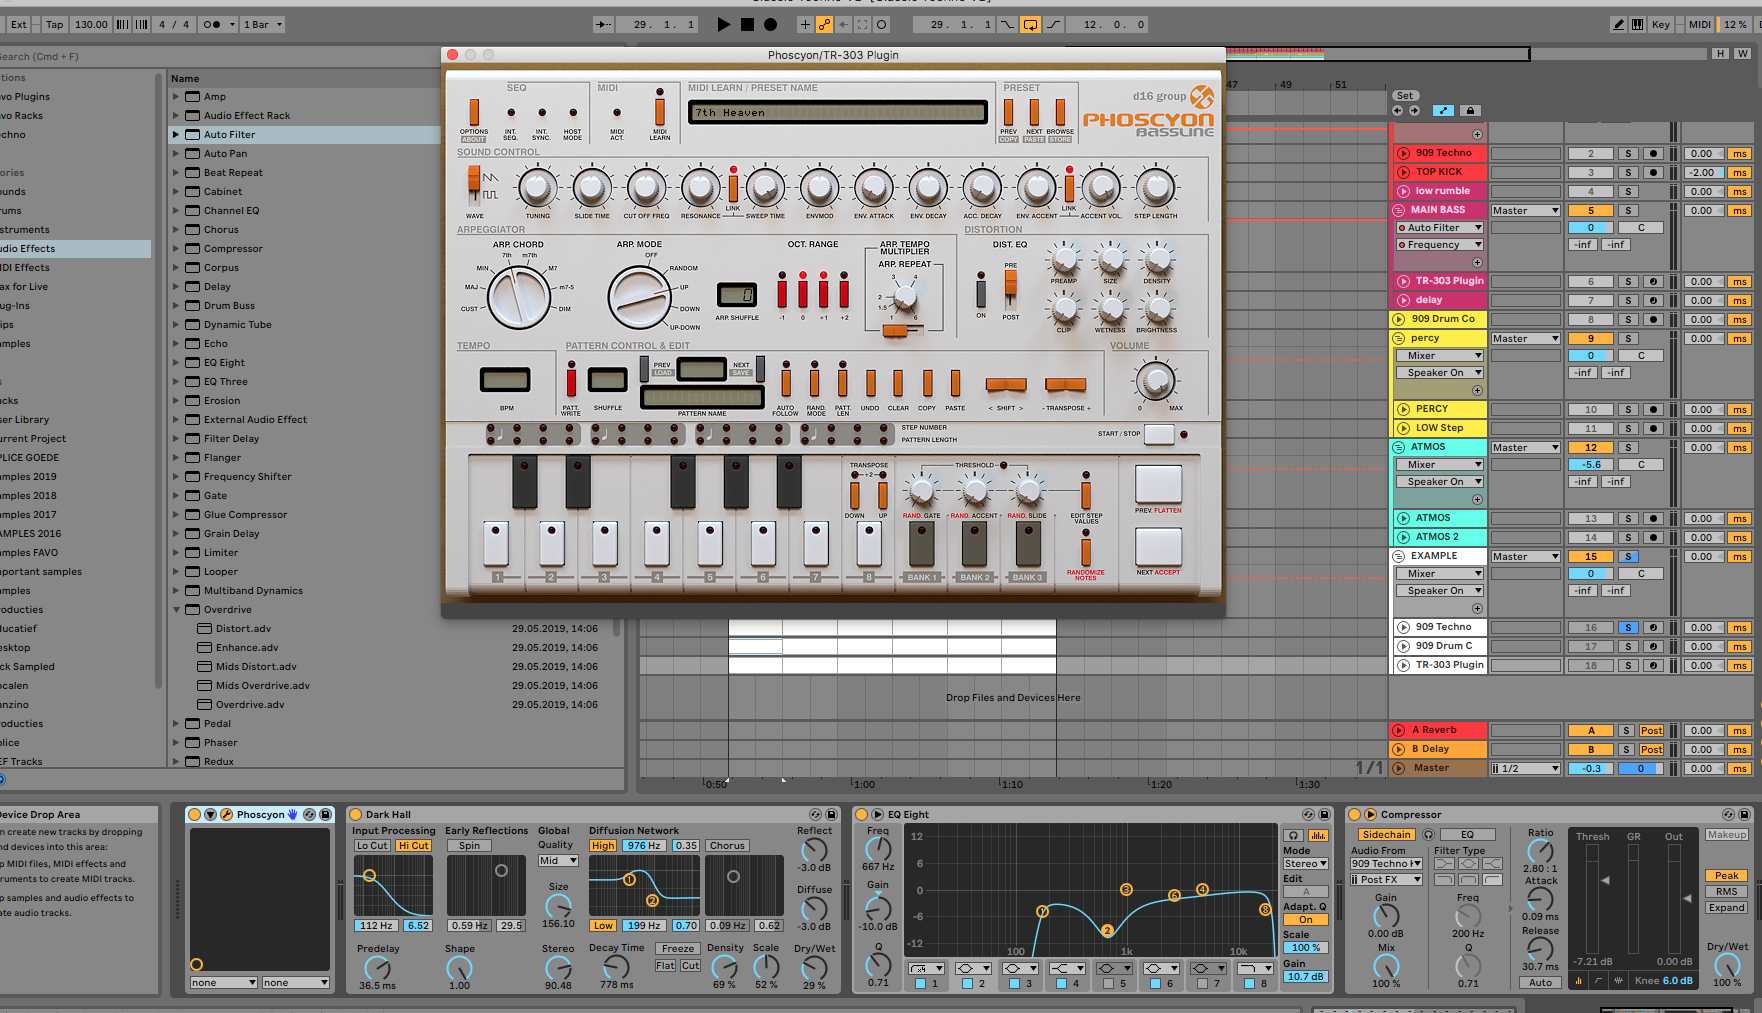 De TR-303 in Ableton Live via een plugin